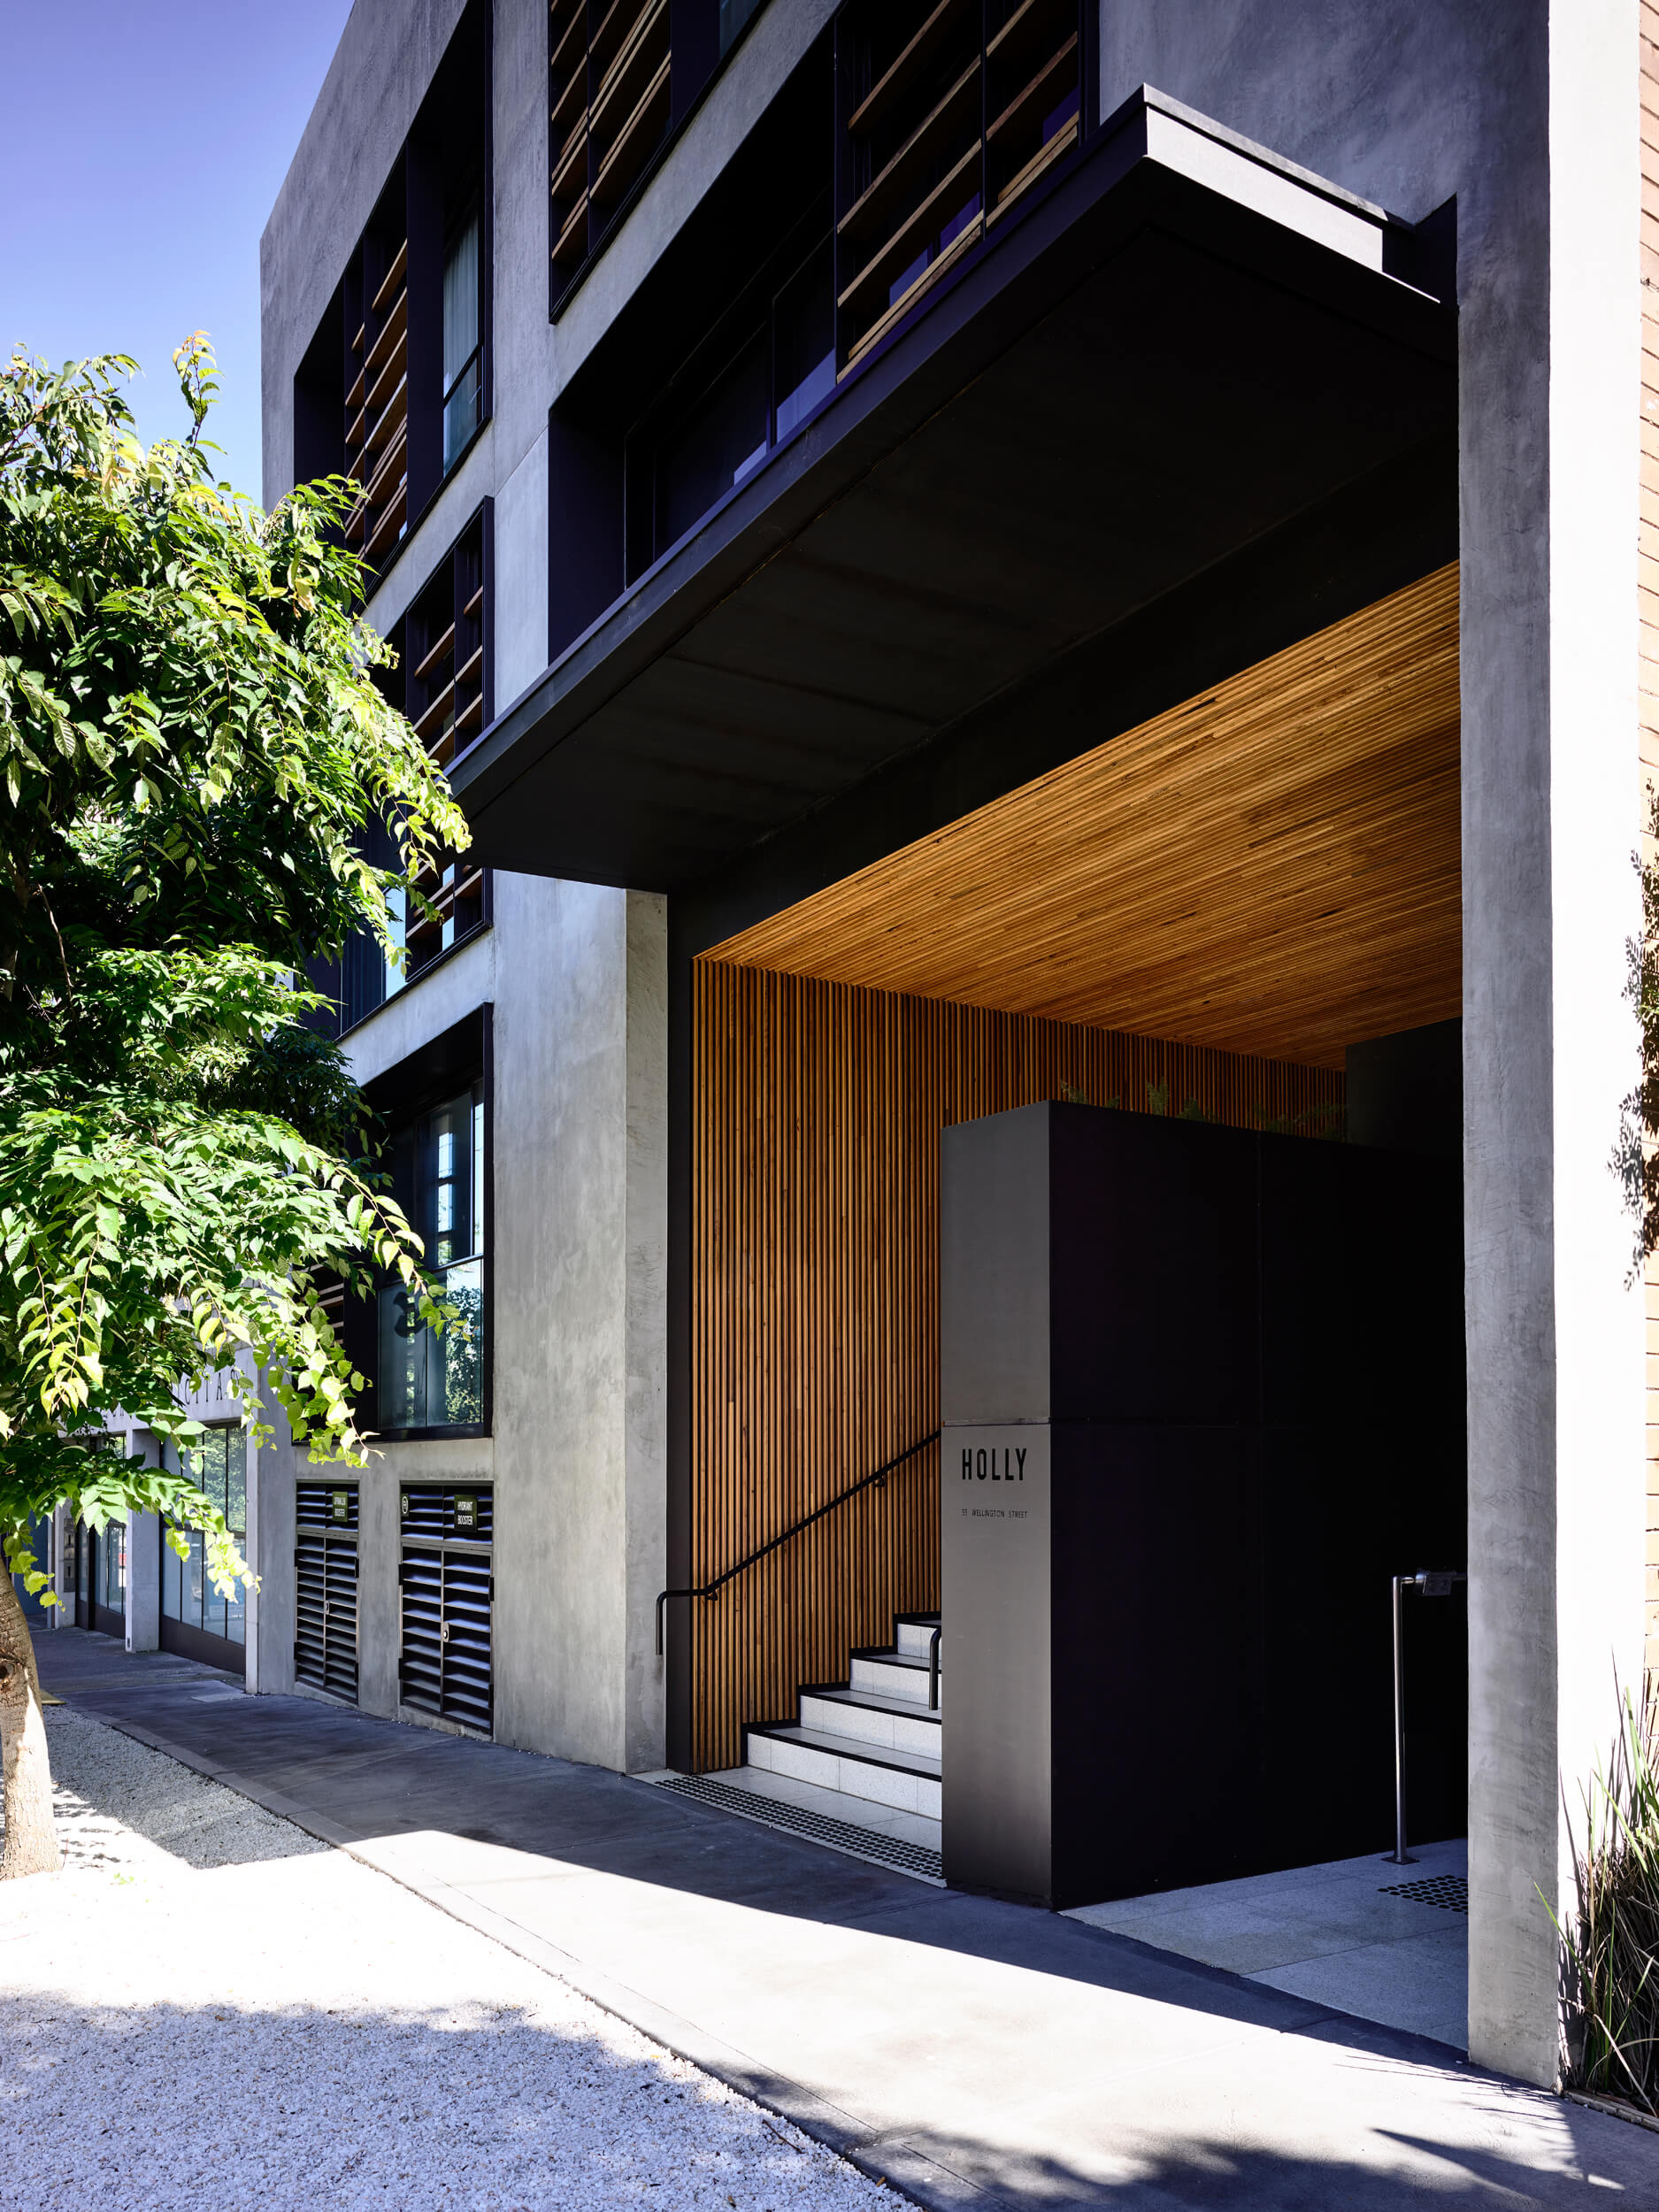 Holly Penthouse By Tom Robertson Architects Project Feature Melbourne, Australia Local Australian Design & Architectureholly R V Derek045